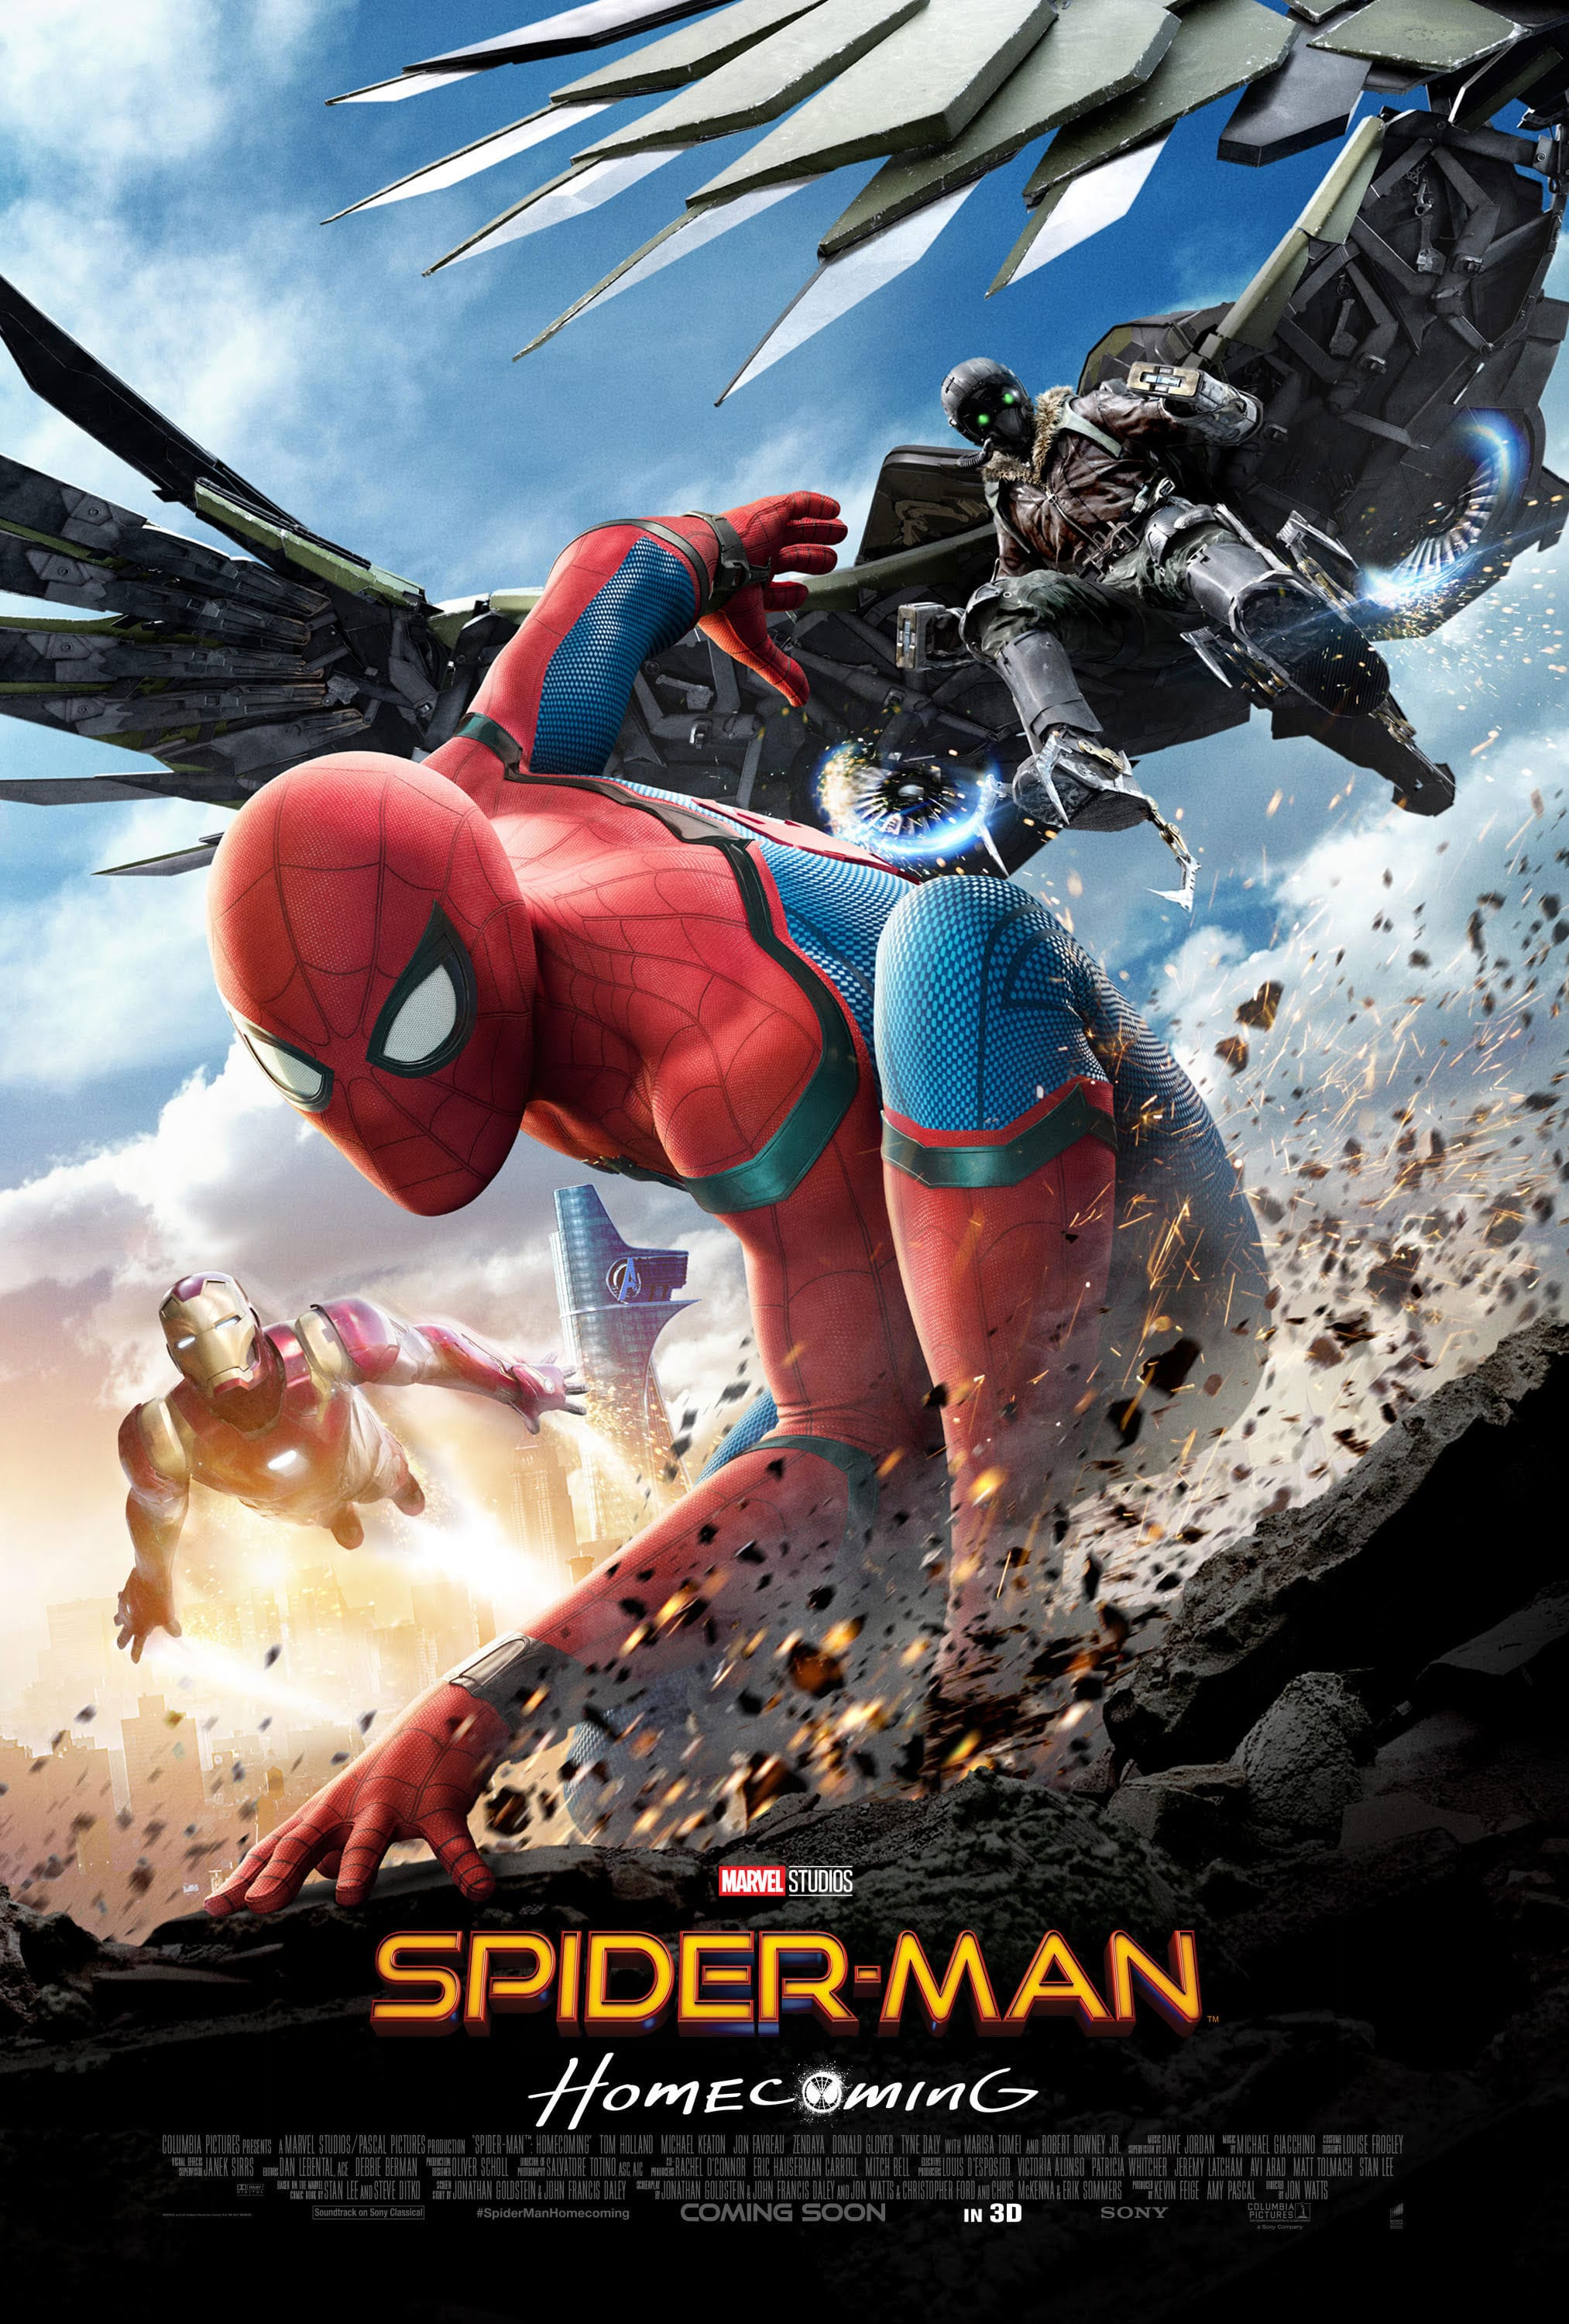 spiderman homecoming poster high quality HD printable wallpapers spiderman and iron man fighting vulture